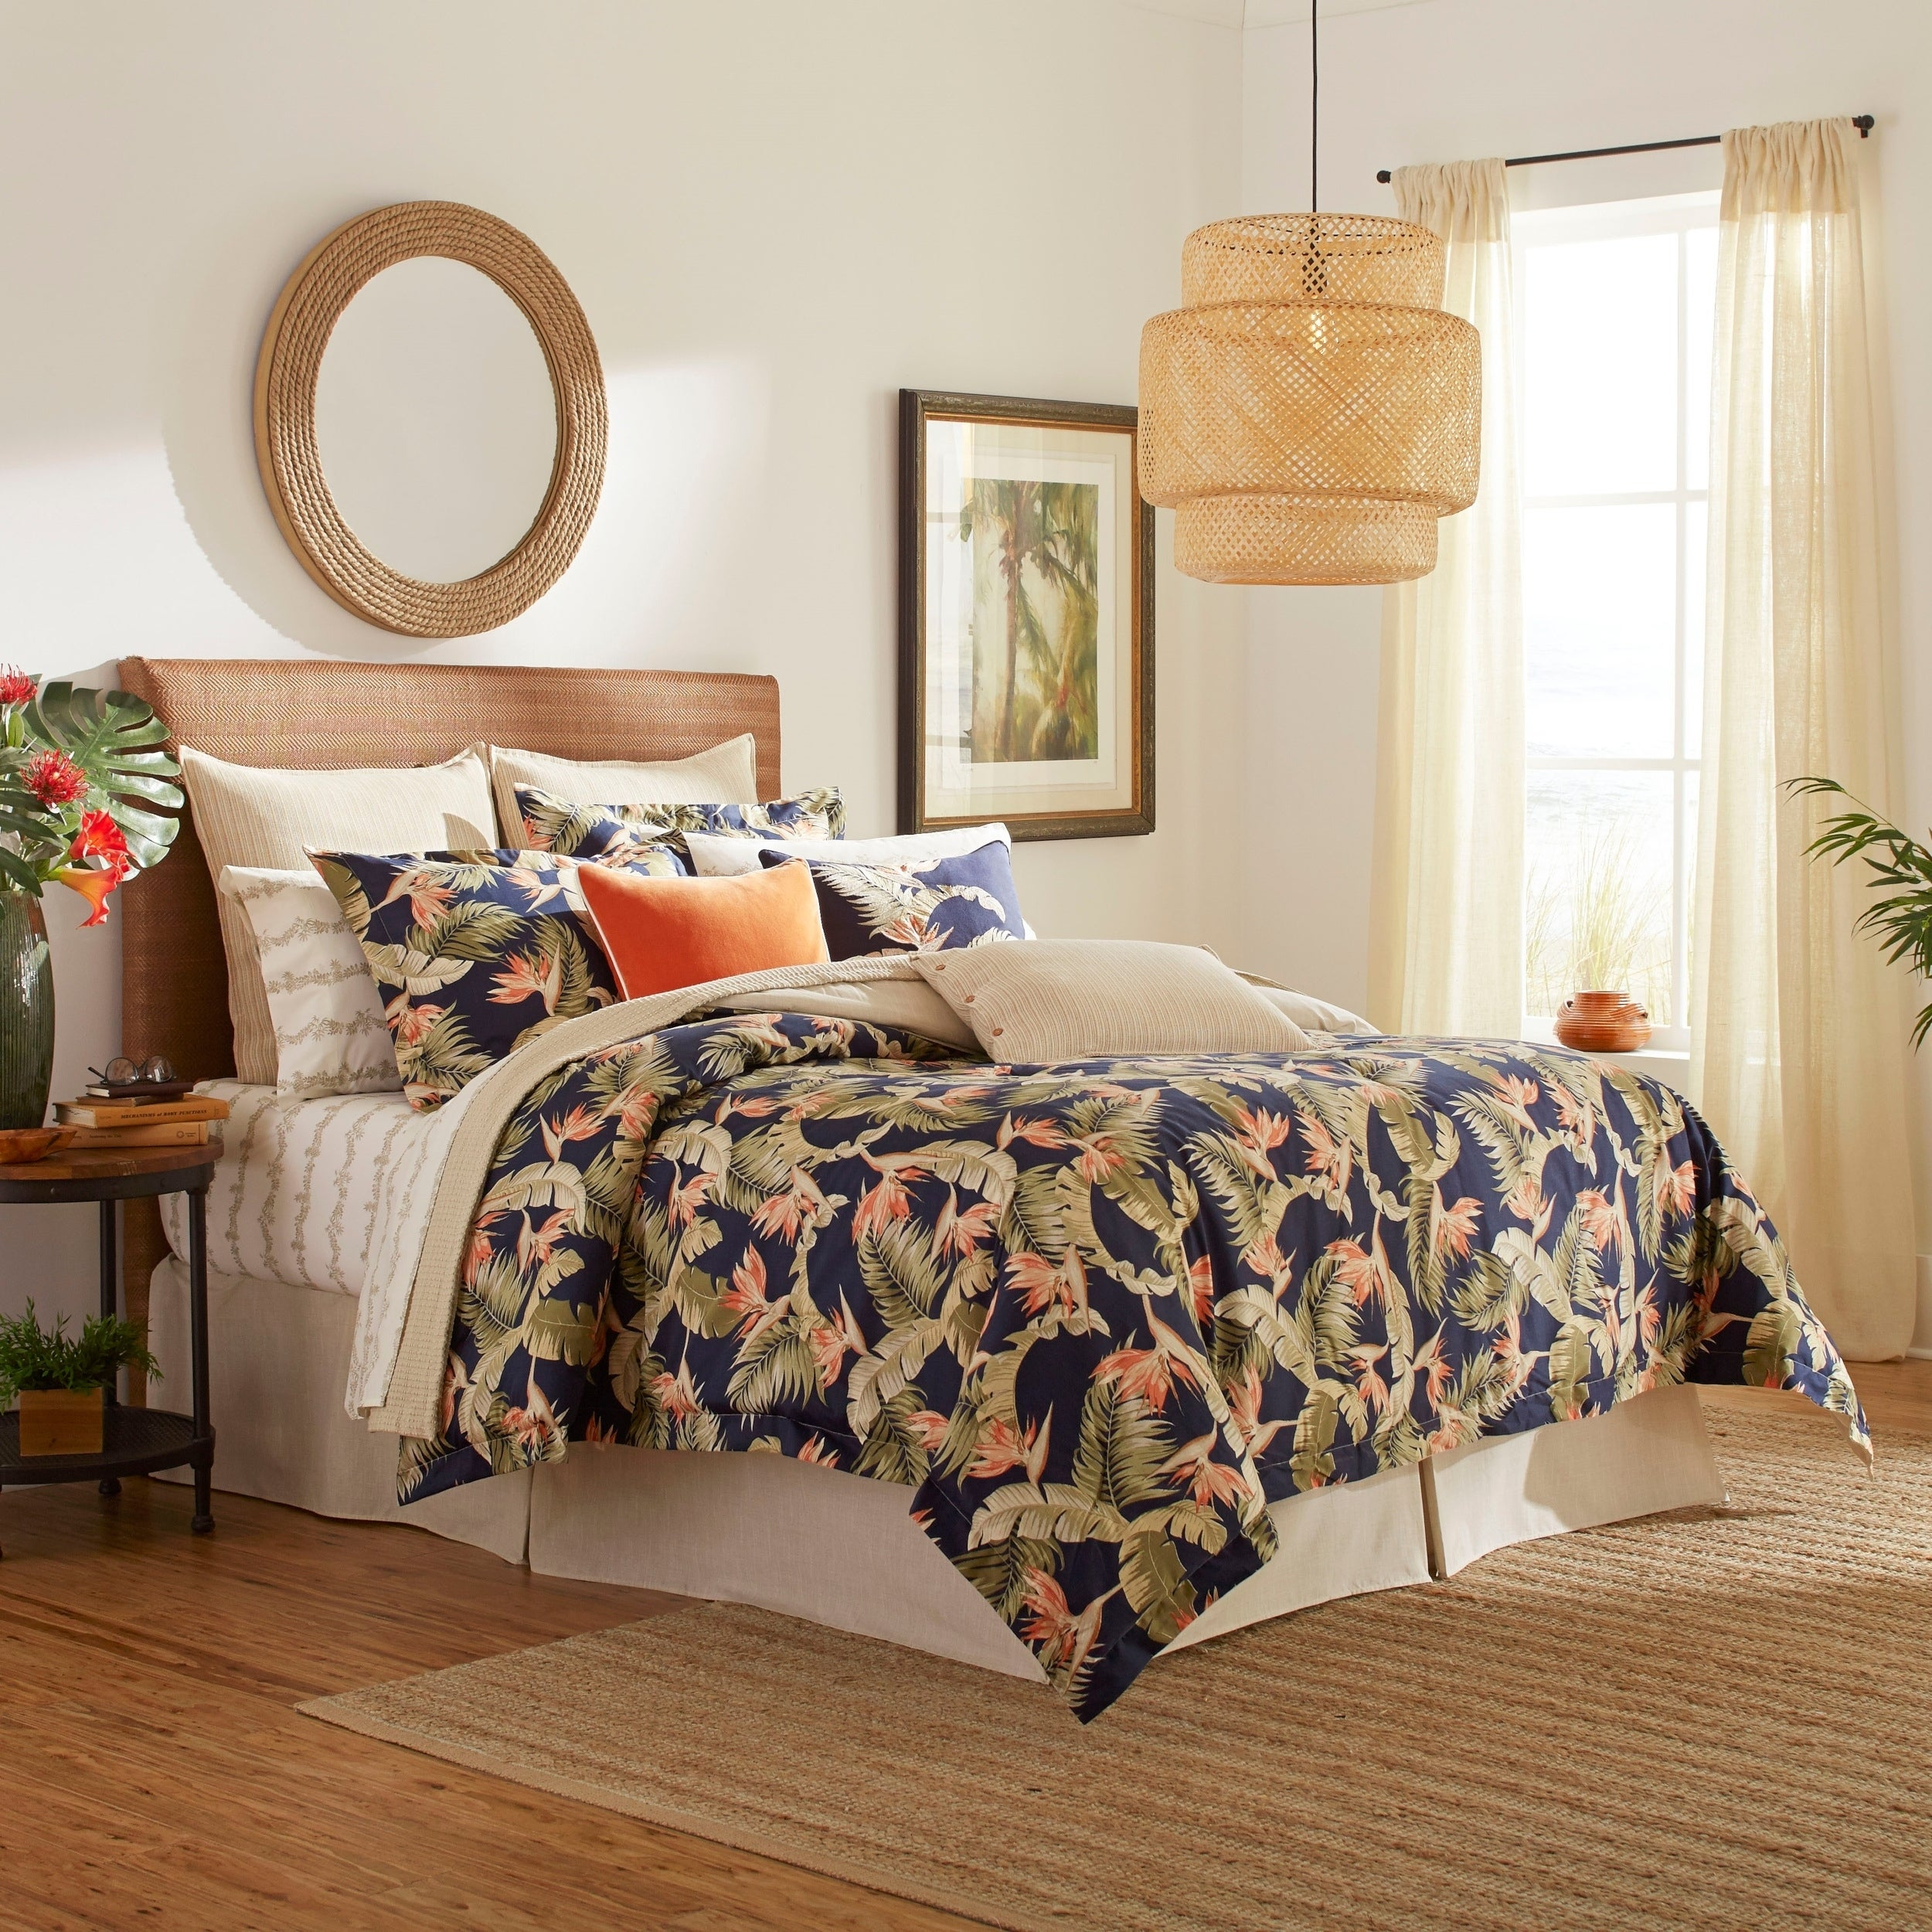 Picture of: Tommy Bahama San Jacinto Cotton Comforter Set Overstock 29147222 San Jacinto Queen